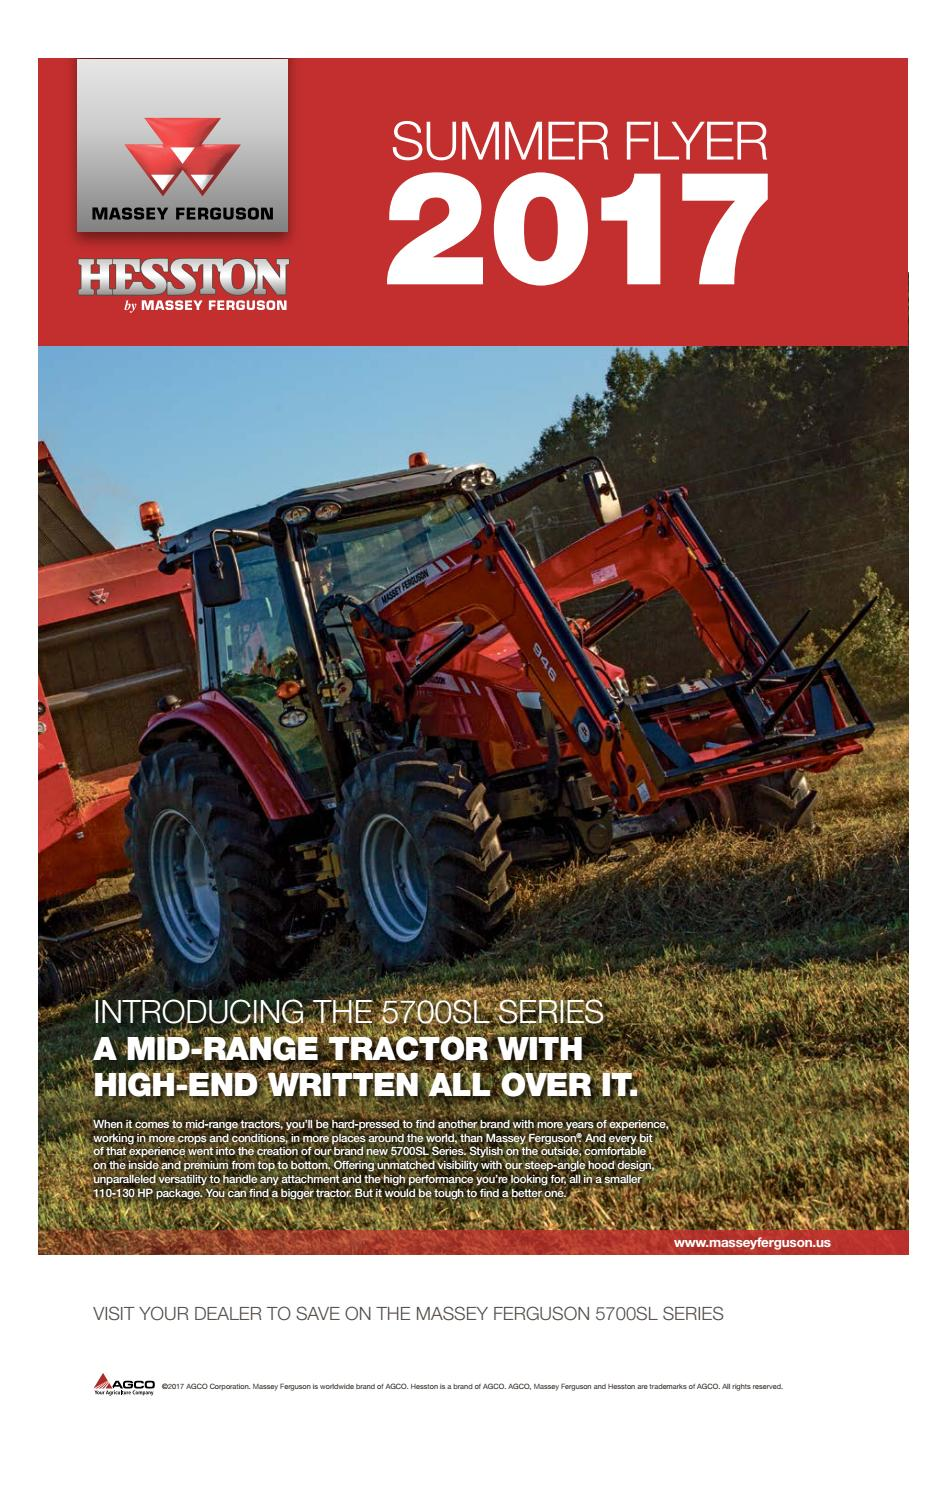 Agco massey flyer by The Western Producer - issuu